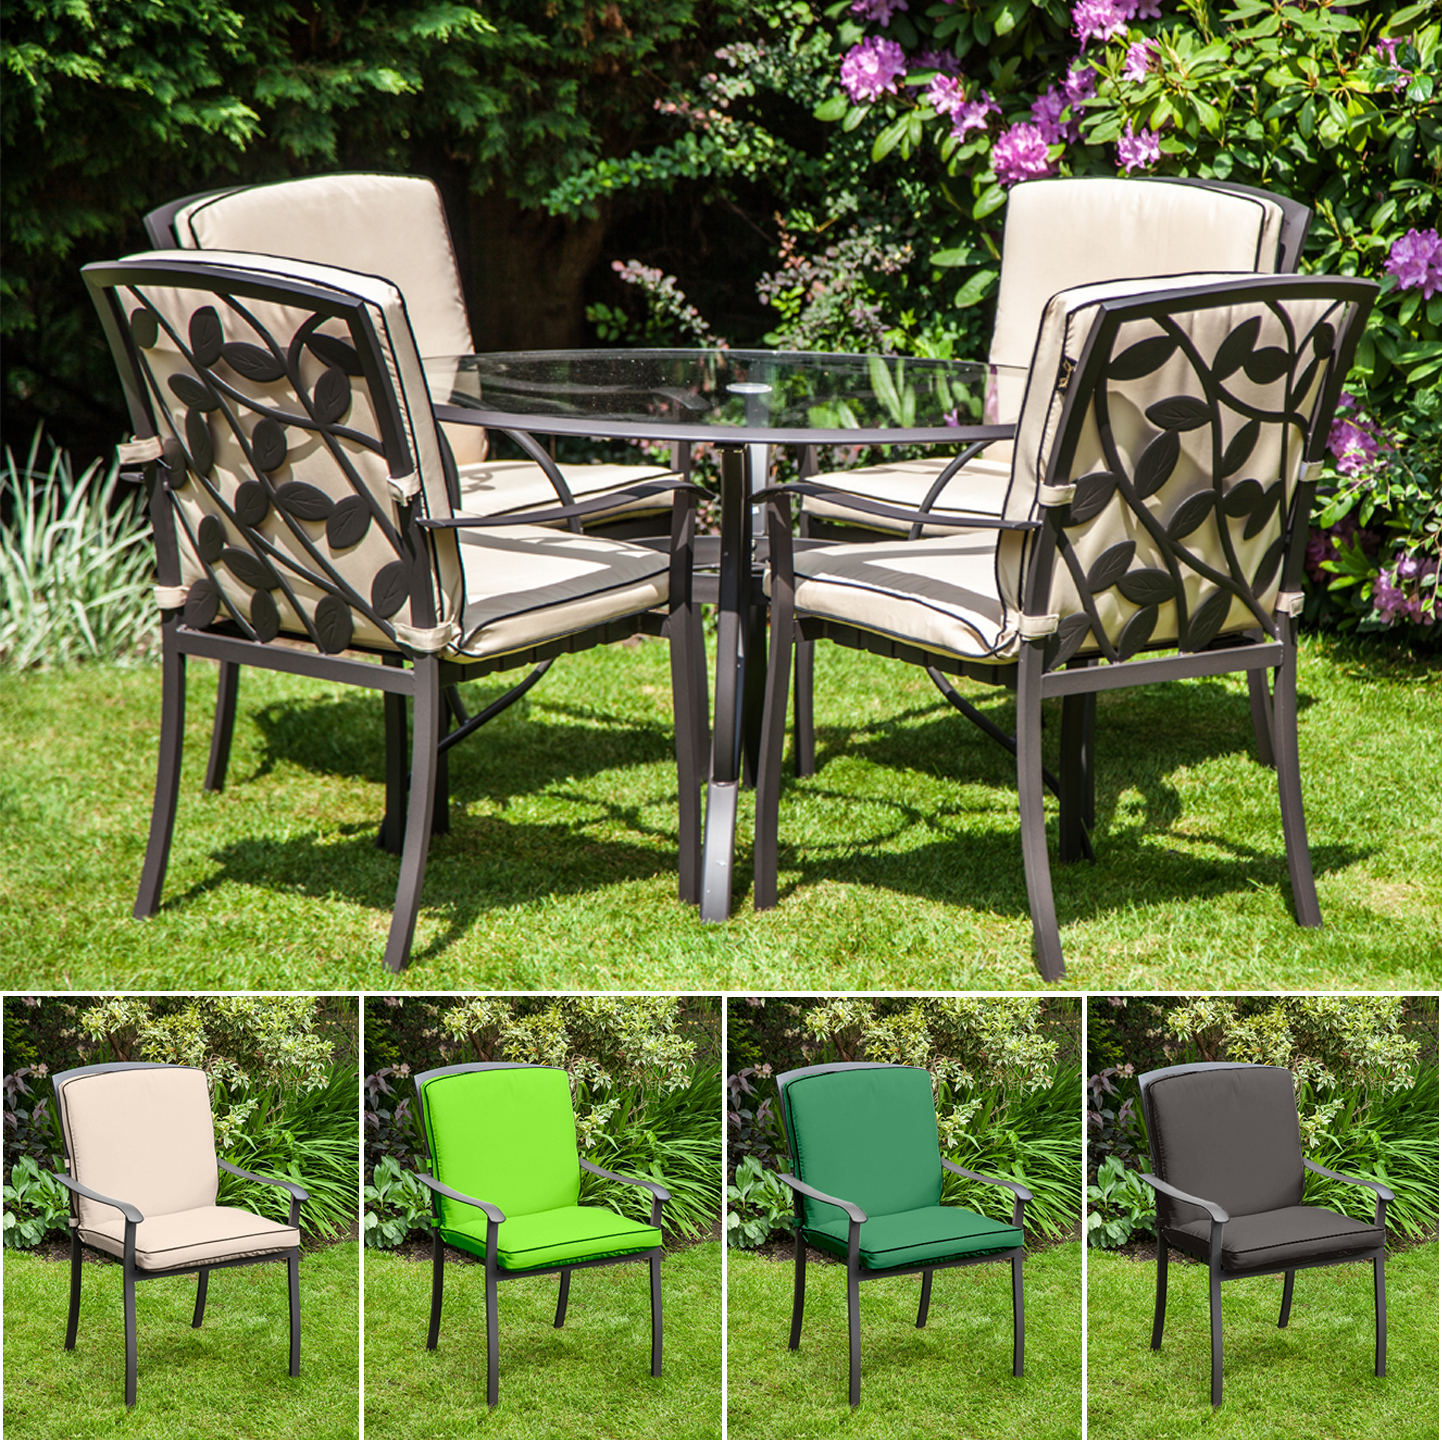 small chair cushions uk booster for elderly replacement cushion homebase lucca metal garden patio